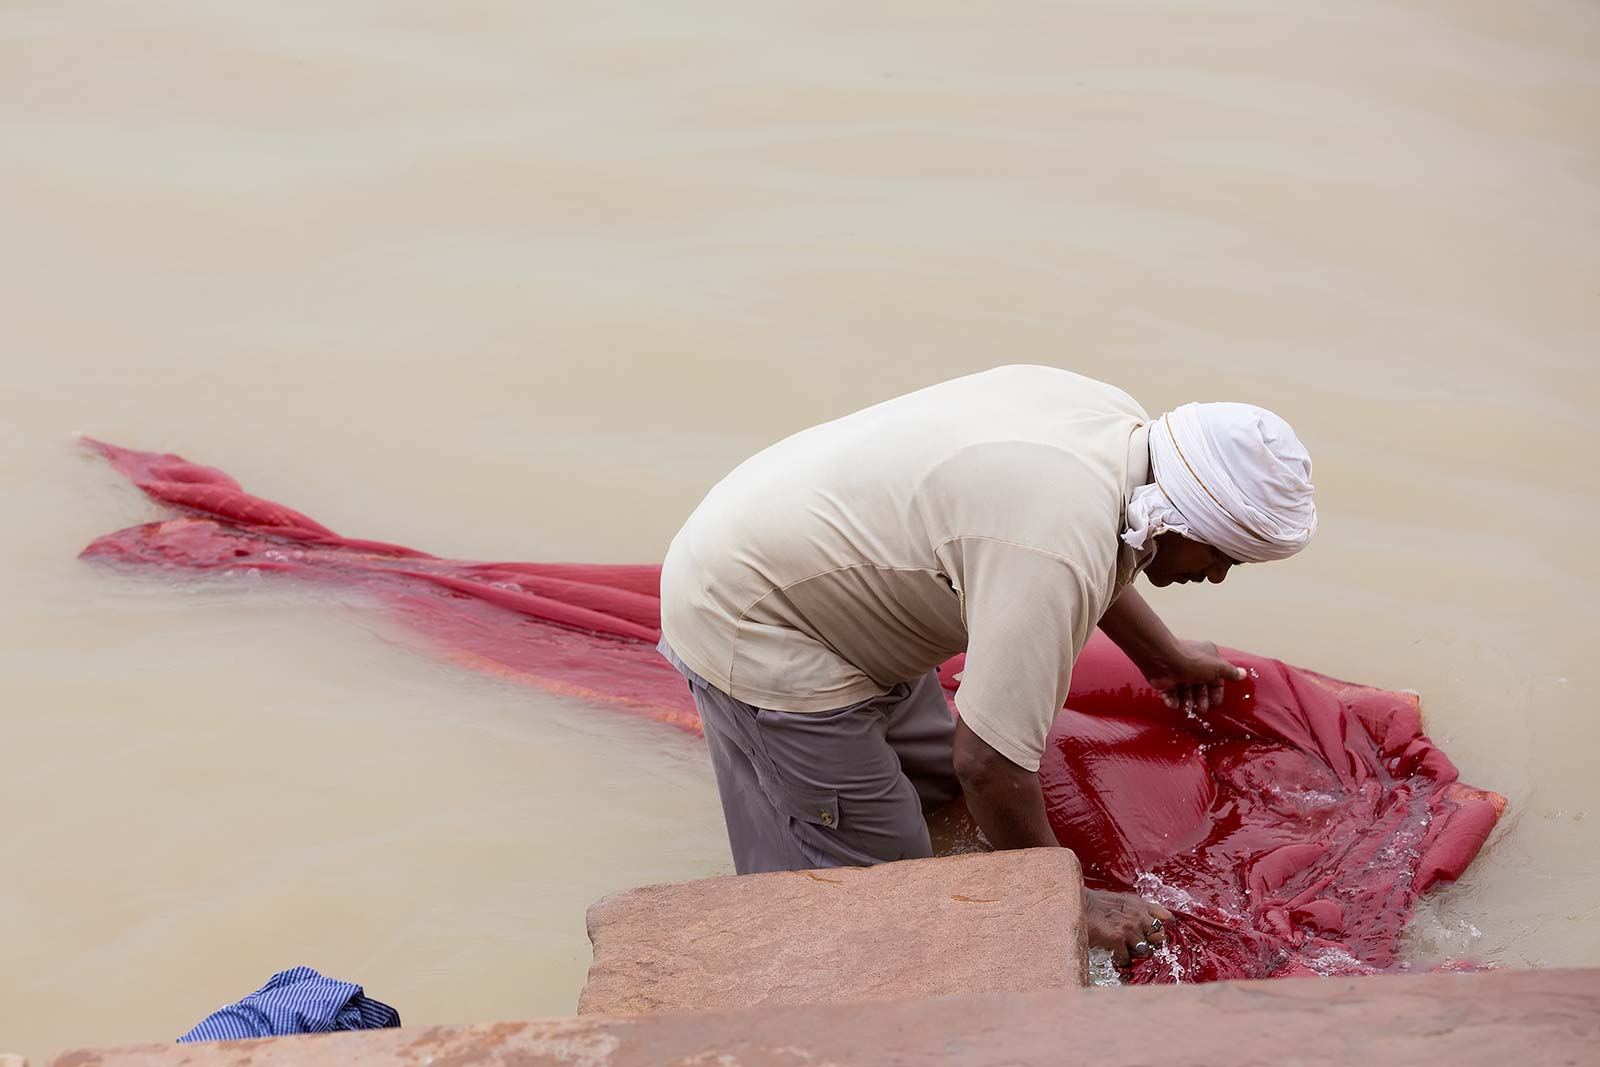 Not only body fluids make their way into the river, but also lots of chemicals from the daily washing routine in Varanasi. It's not for nothing that the Ganges is one of the most polluted rivers in the world.